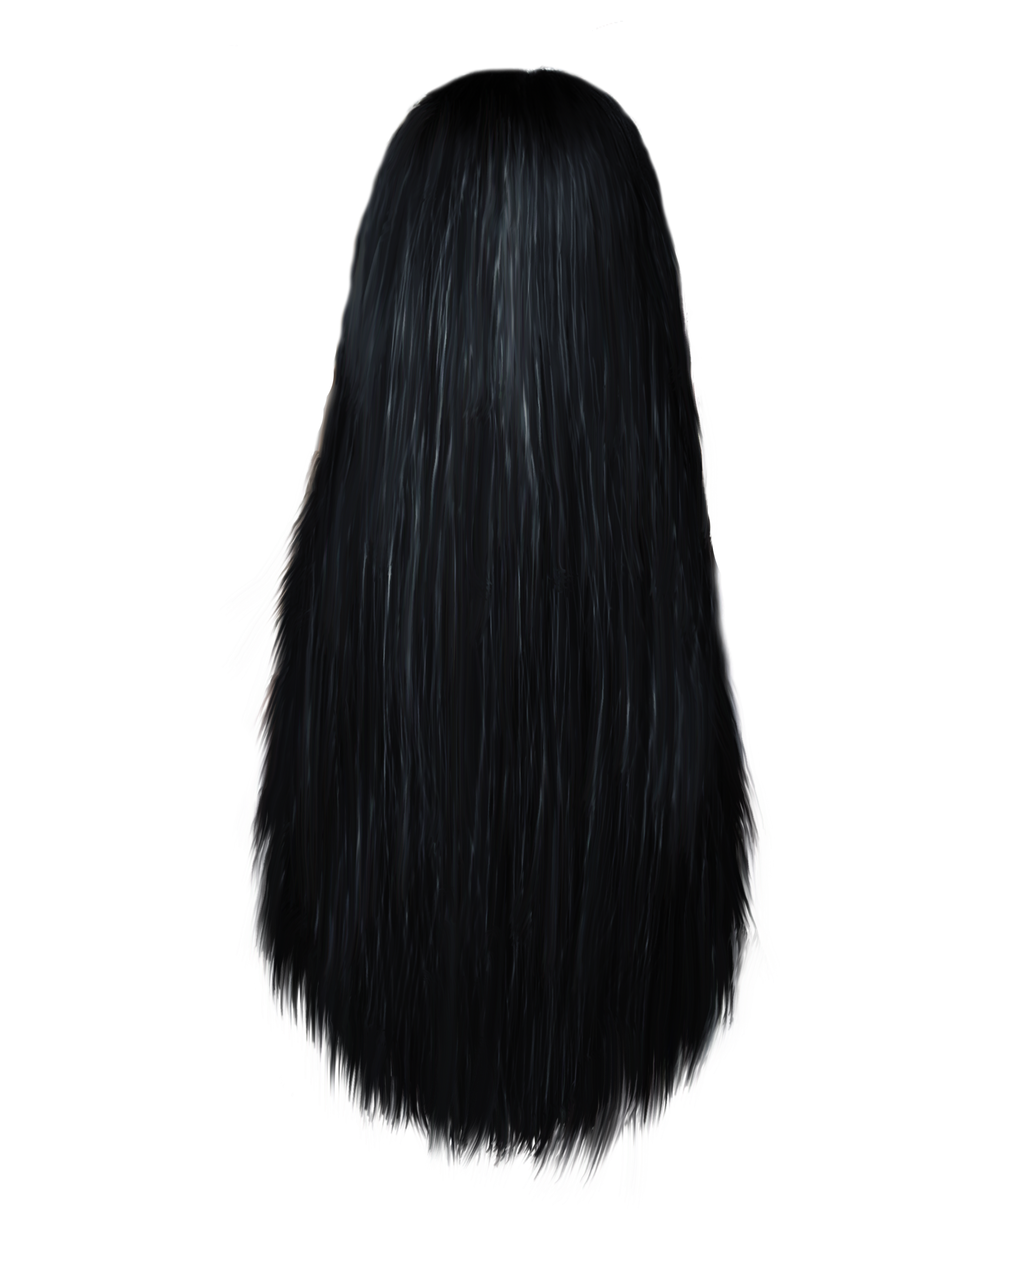 Png Hair 16 By Moonglowlilly On Deviantart